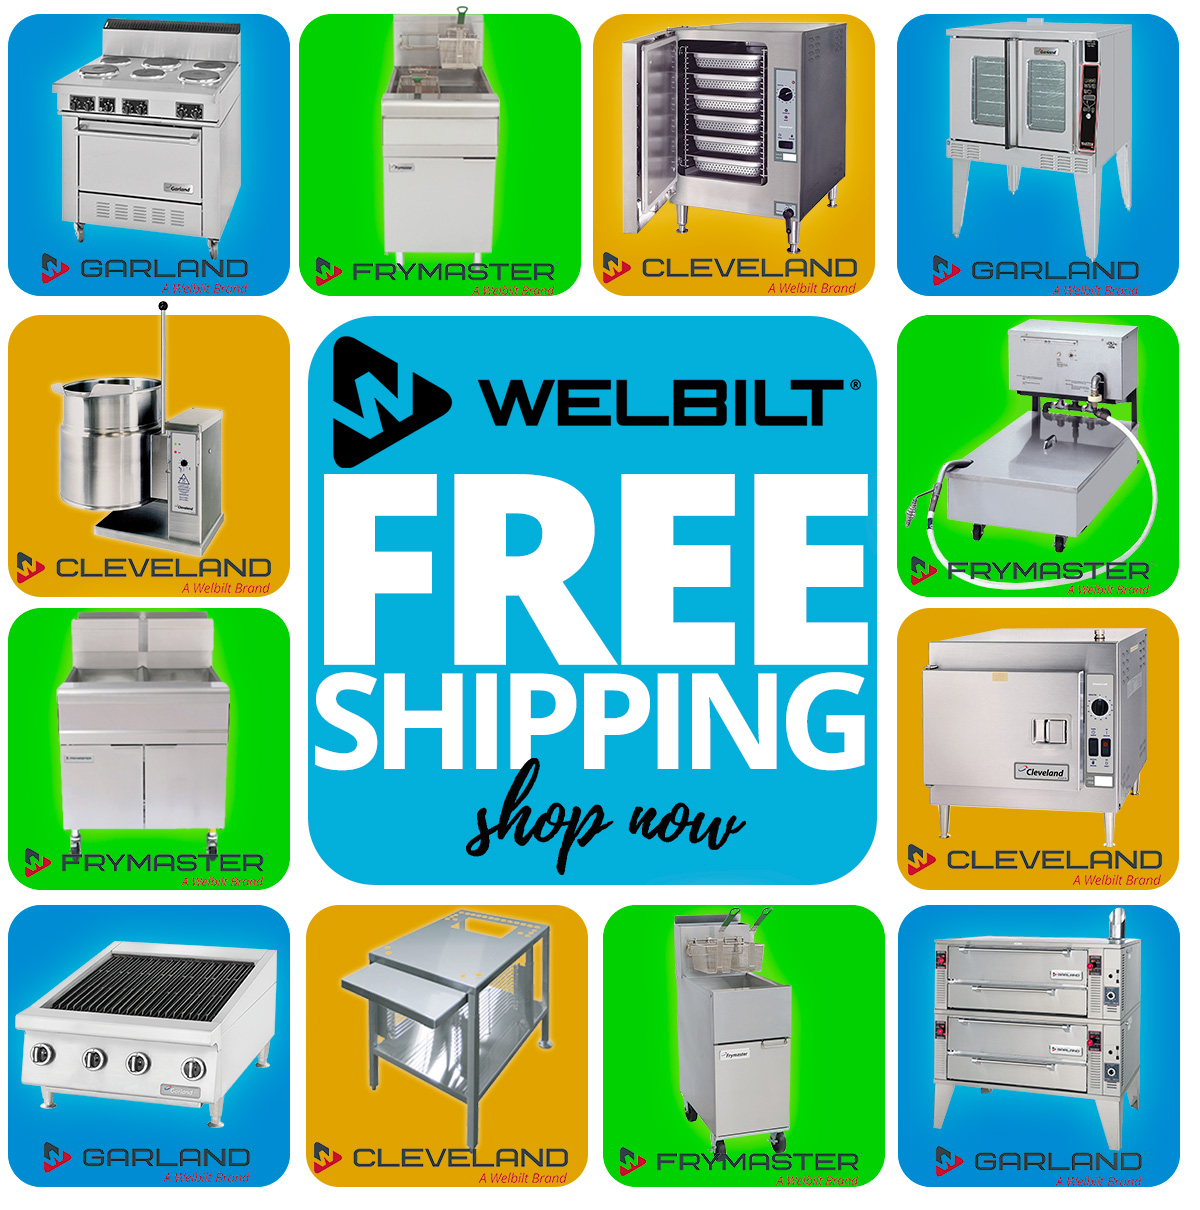 Get these deals such as FREE SHIPPING on Welbilt before time runs out!